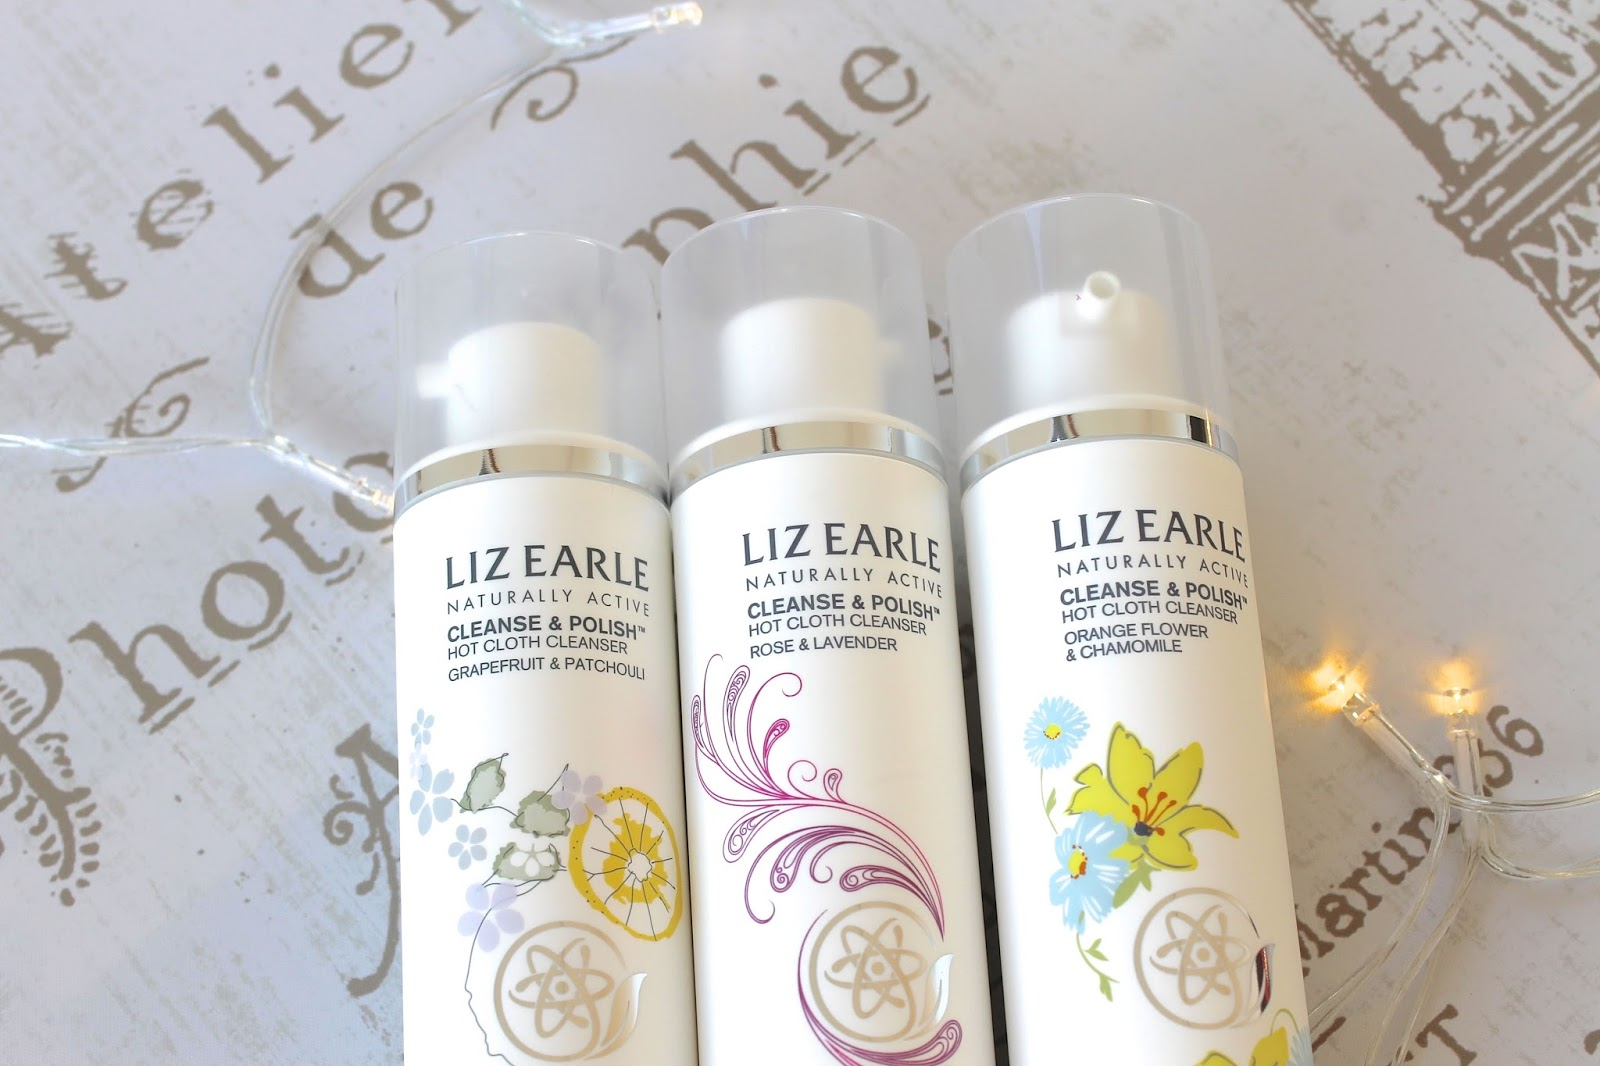 Liz Earle Cleanse & Polish naturally active